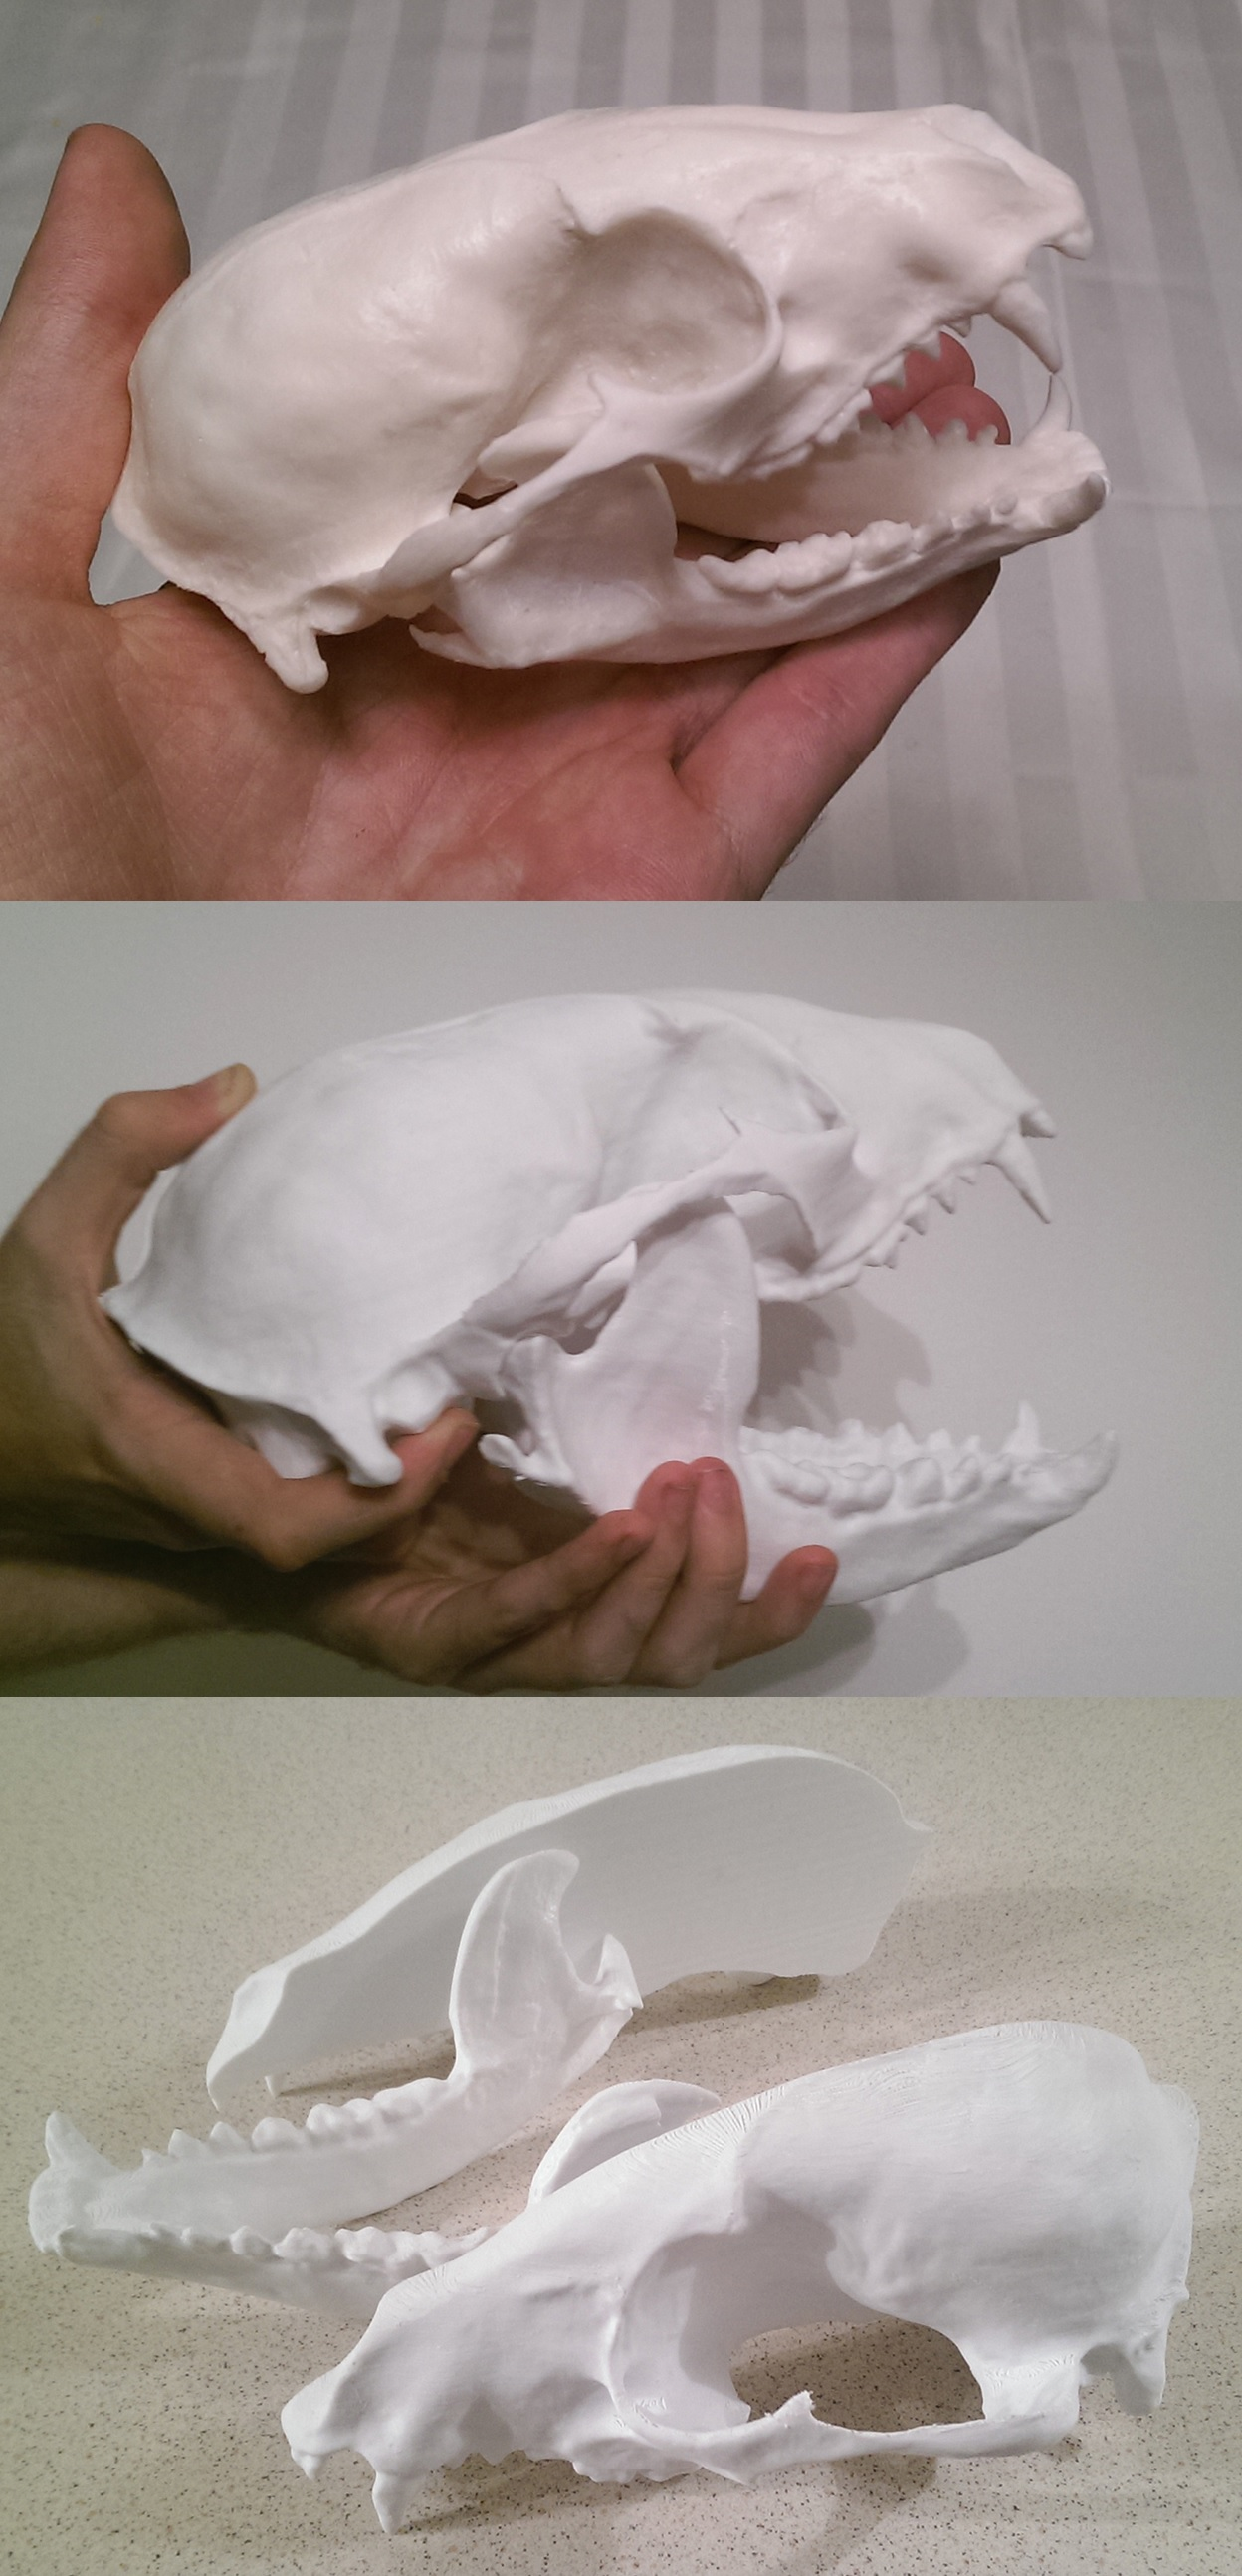 A raccoon skull that was 3D scanned and printed at larger scale to be used for a costume head